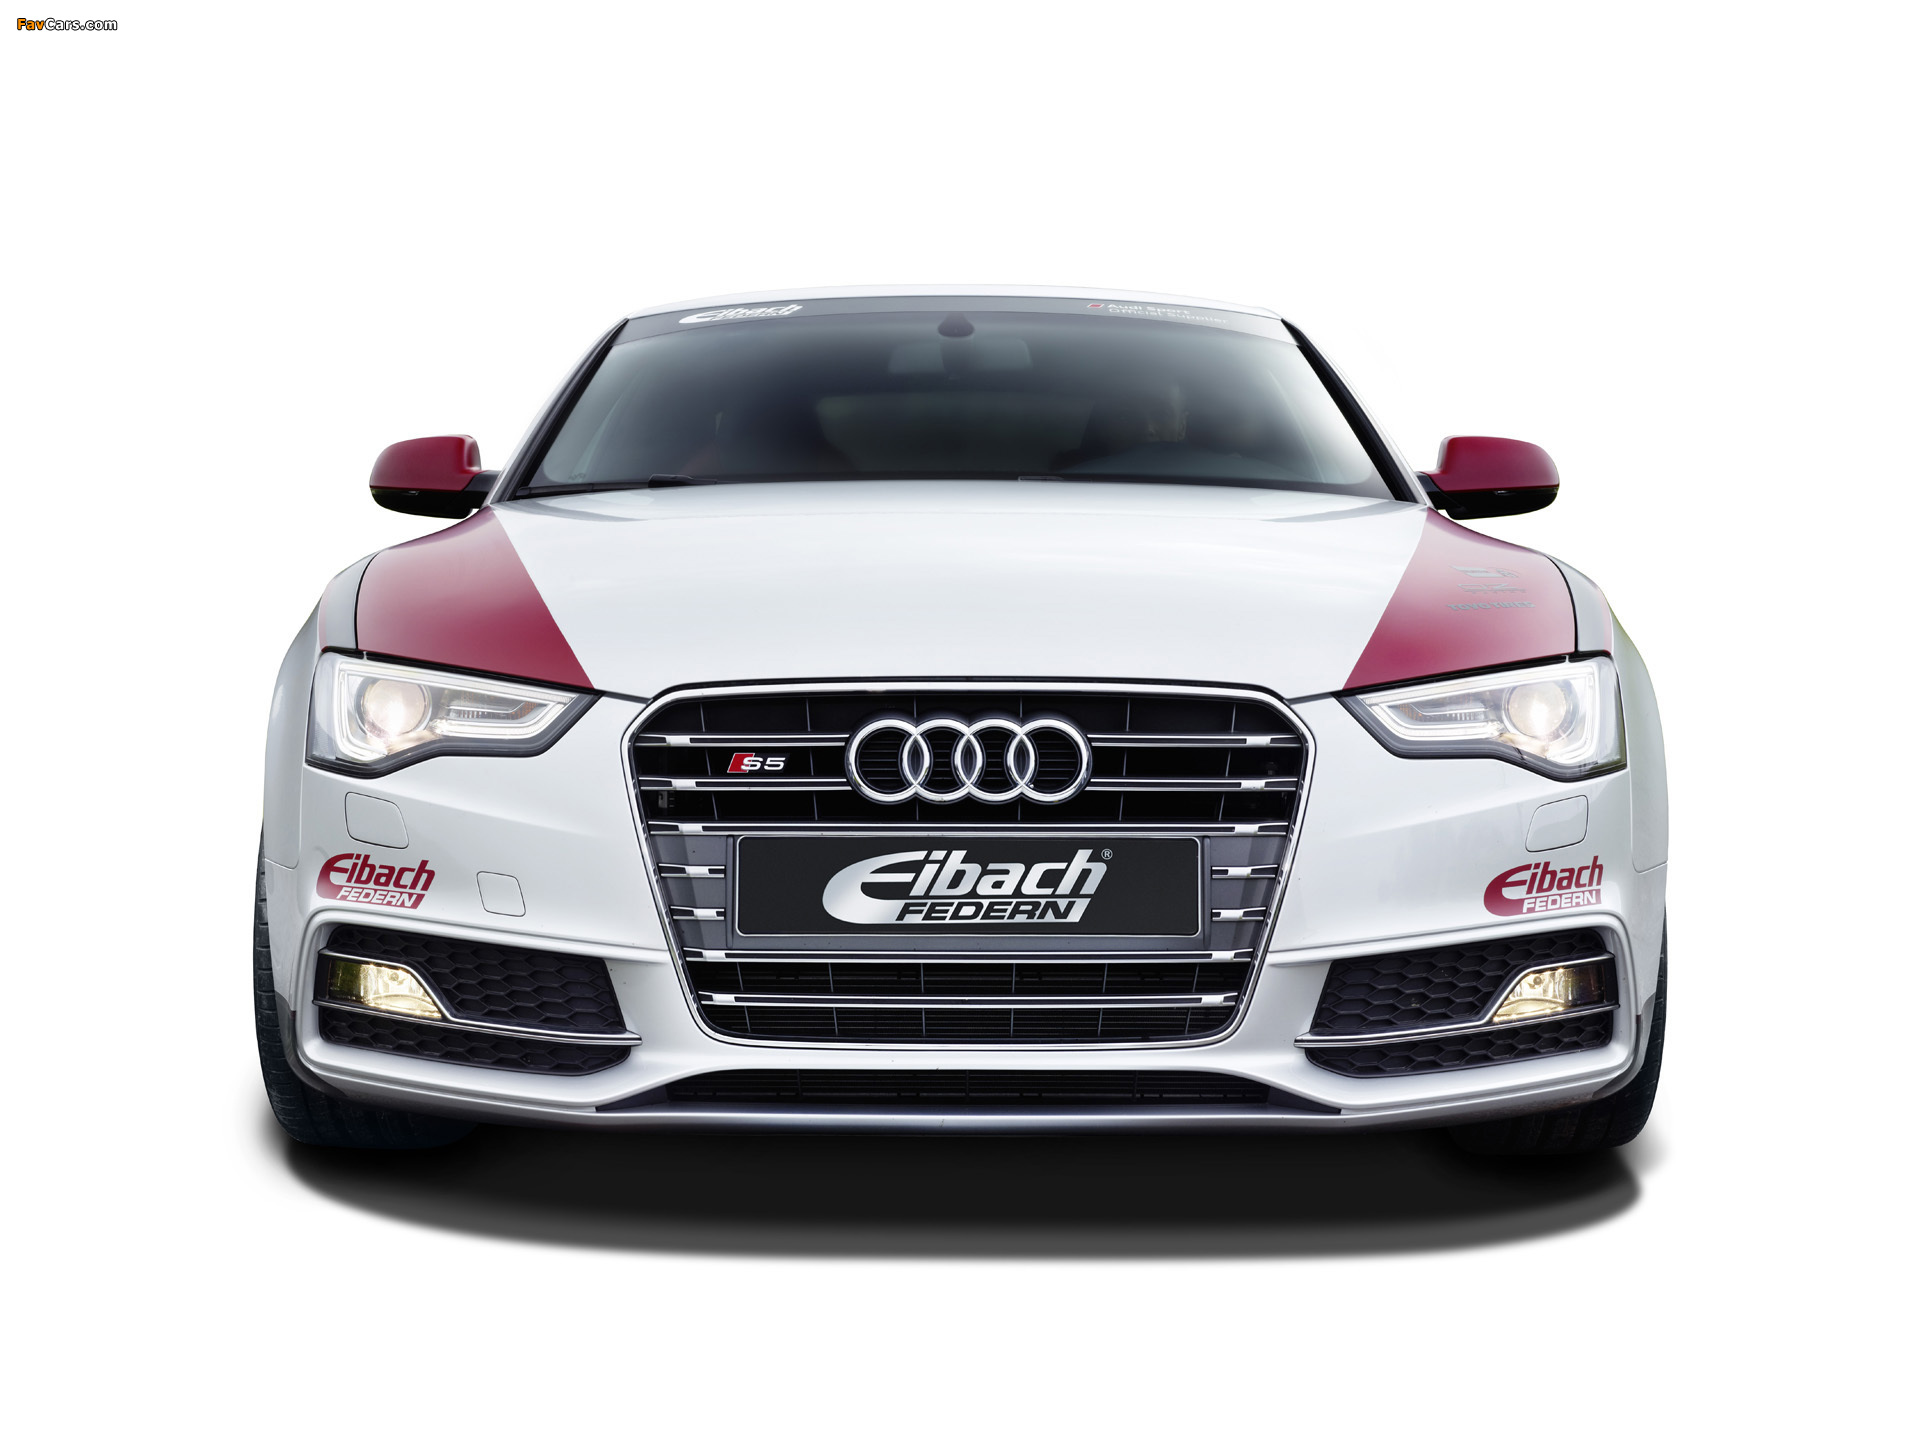 Audi S5 By Eibach 2012 Wallpapers 1920x1440